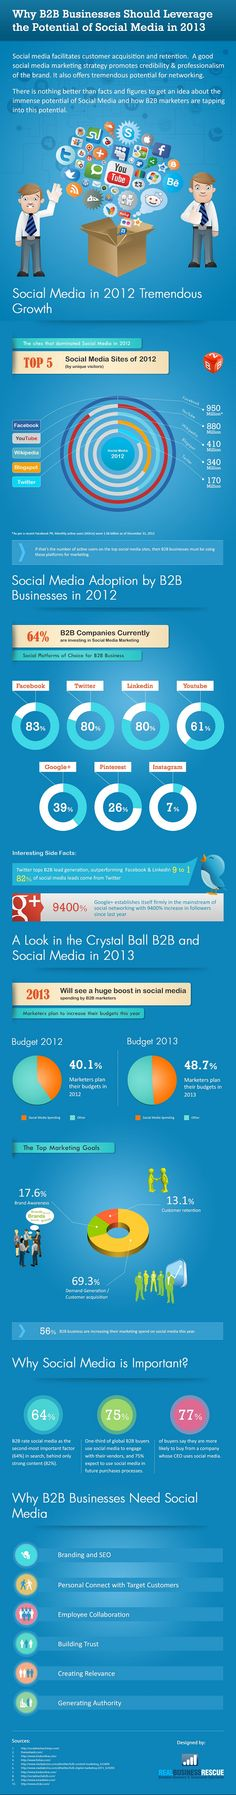 Why B2B Businesses Should Leverage the Potential of Social Media in 2013? #Infographic